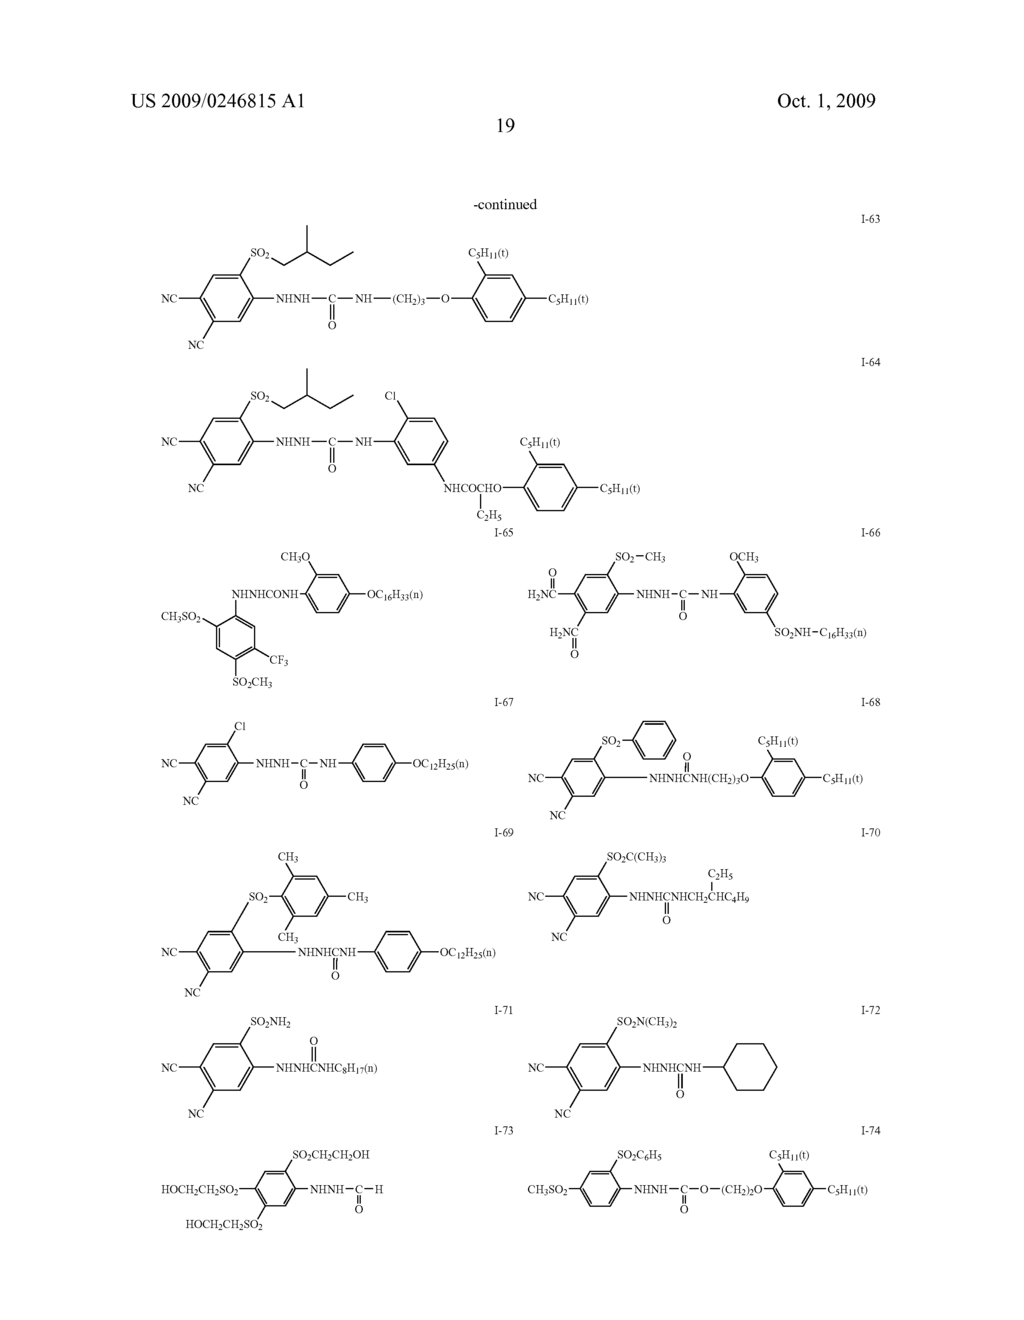 PROTEASE DETECTION MATERIAL, SET OF PROTEASE DETECTION MATERIALS, AND METHOD FOR MEASURING PROTEASE - diagram, schematic, and image 20